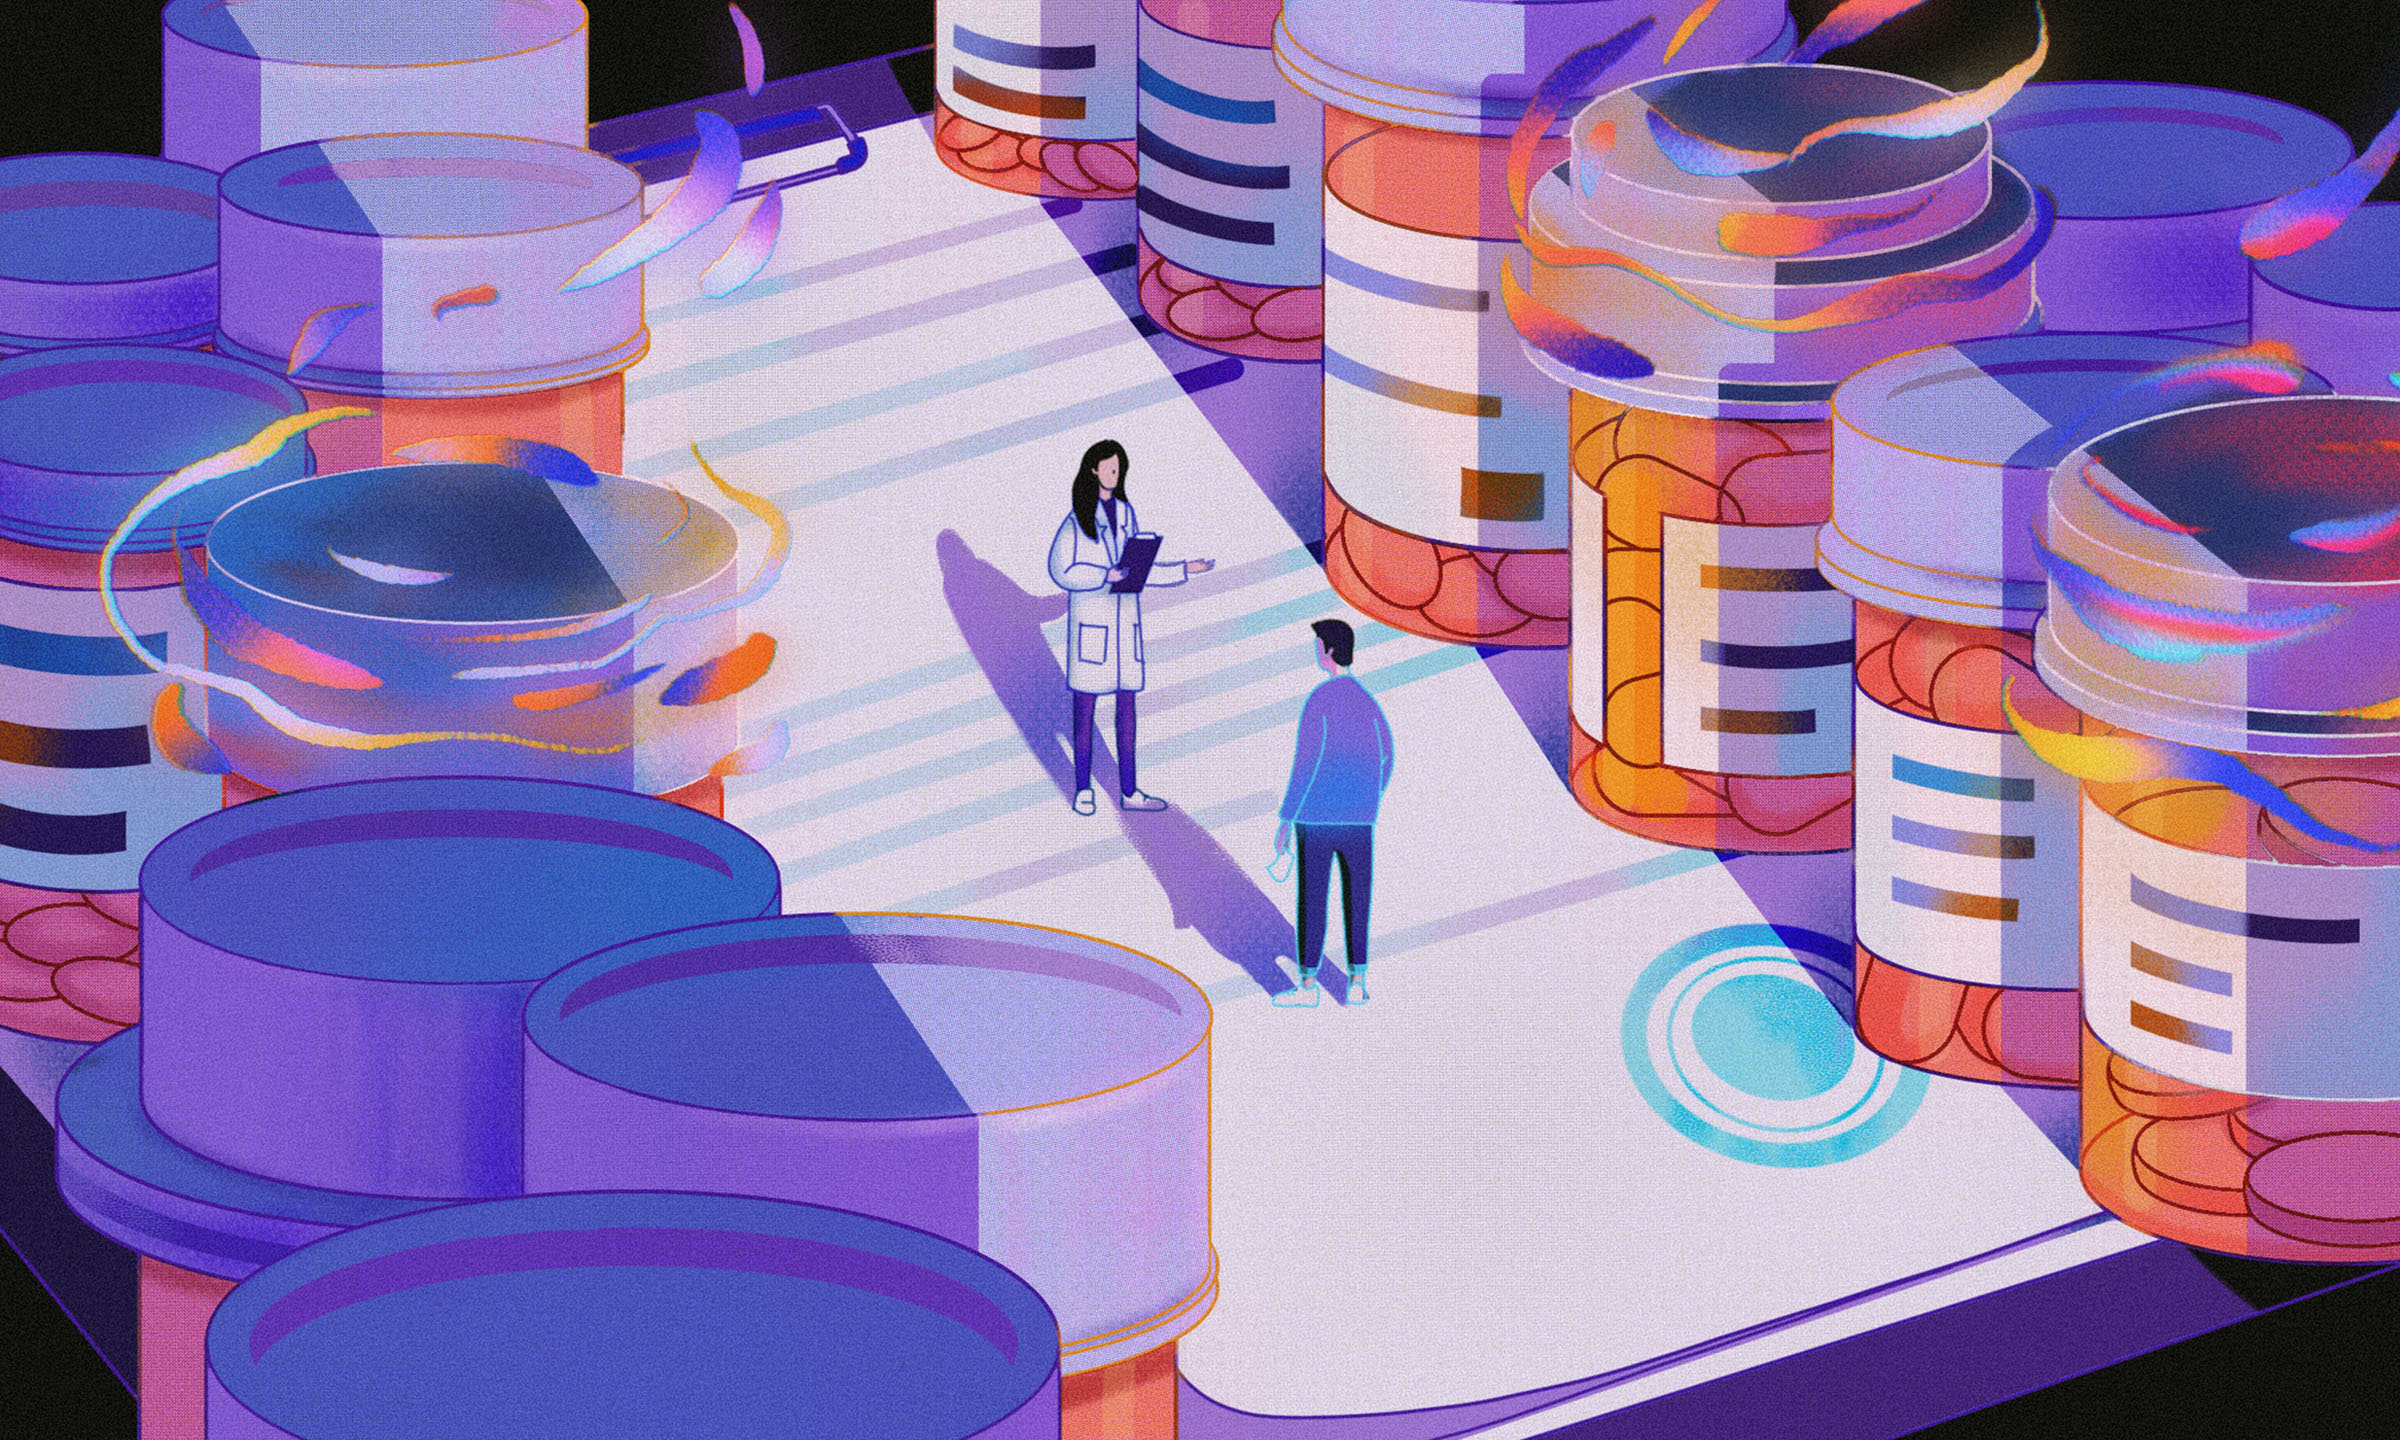 Pharmacist chats with patient among giant pill bottles